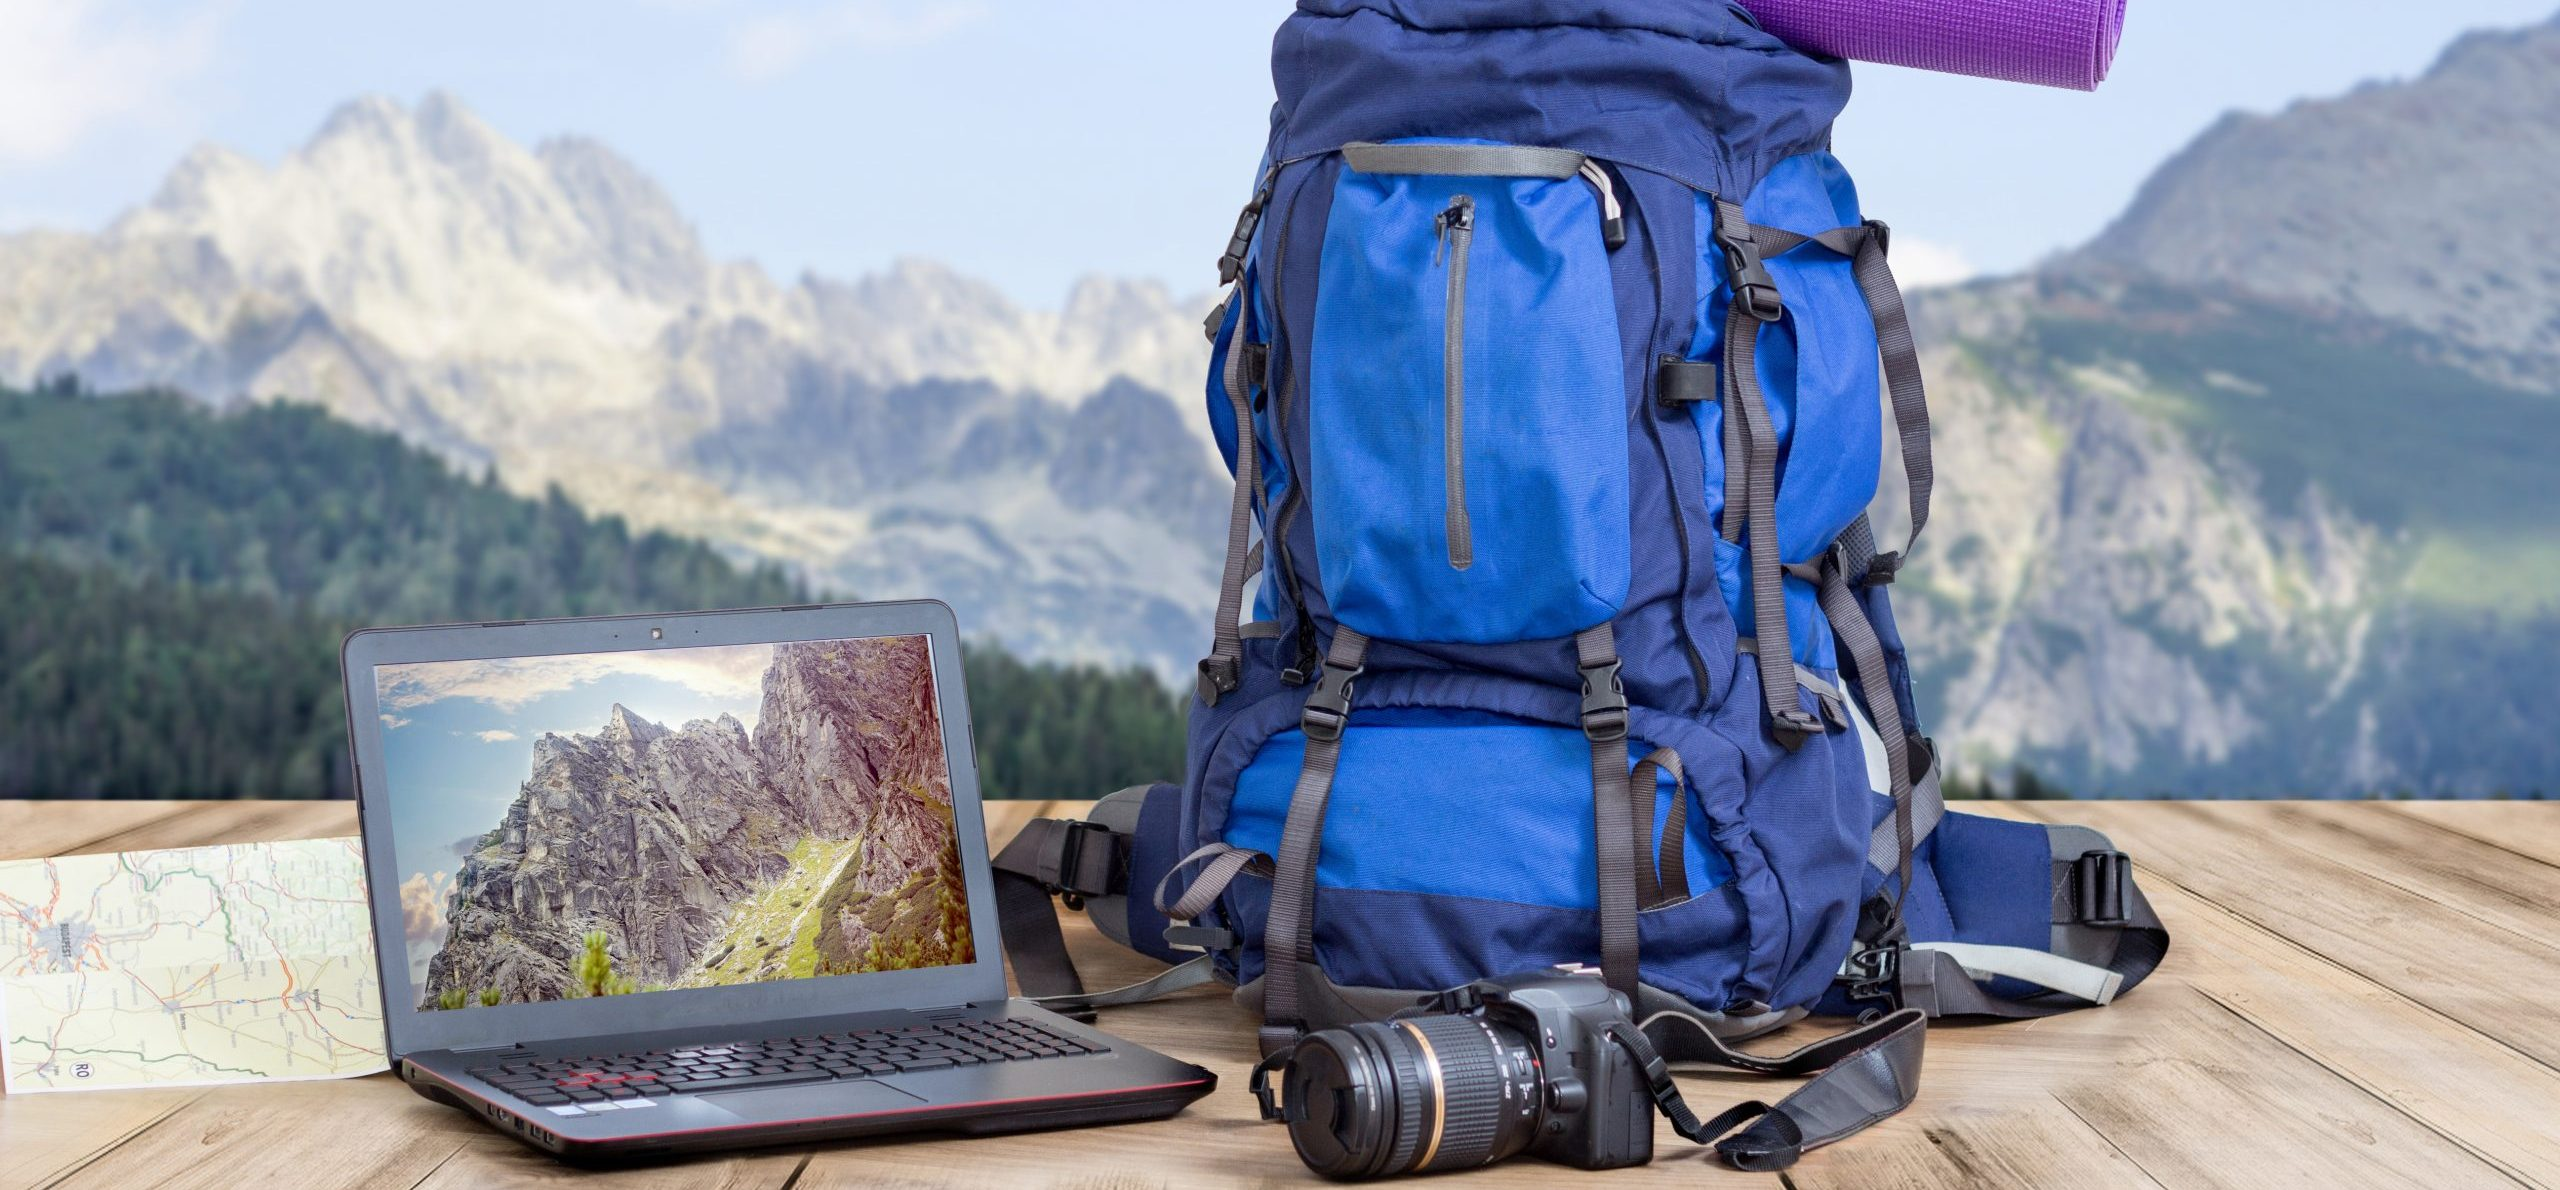 Work with Us Avid voyagers Travel Blog Collaborations